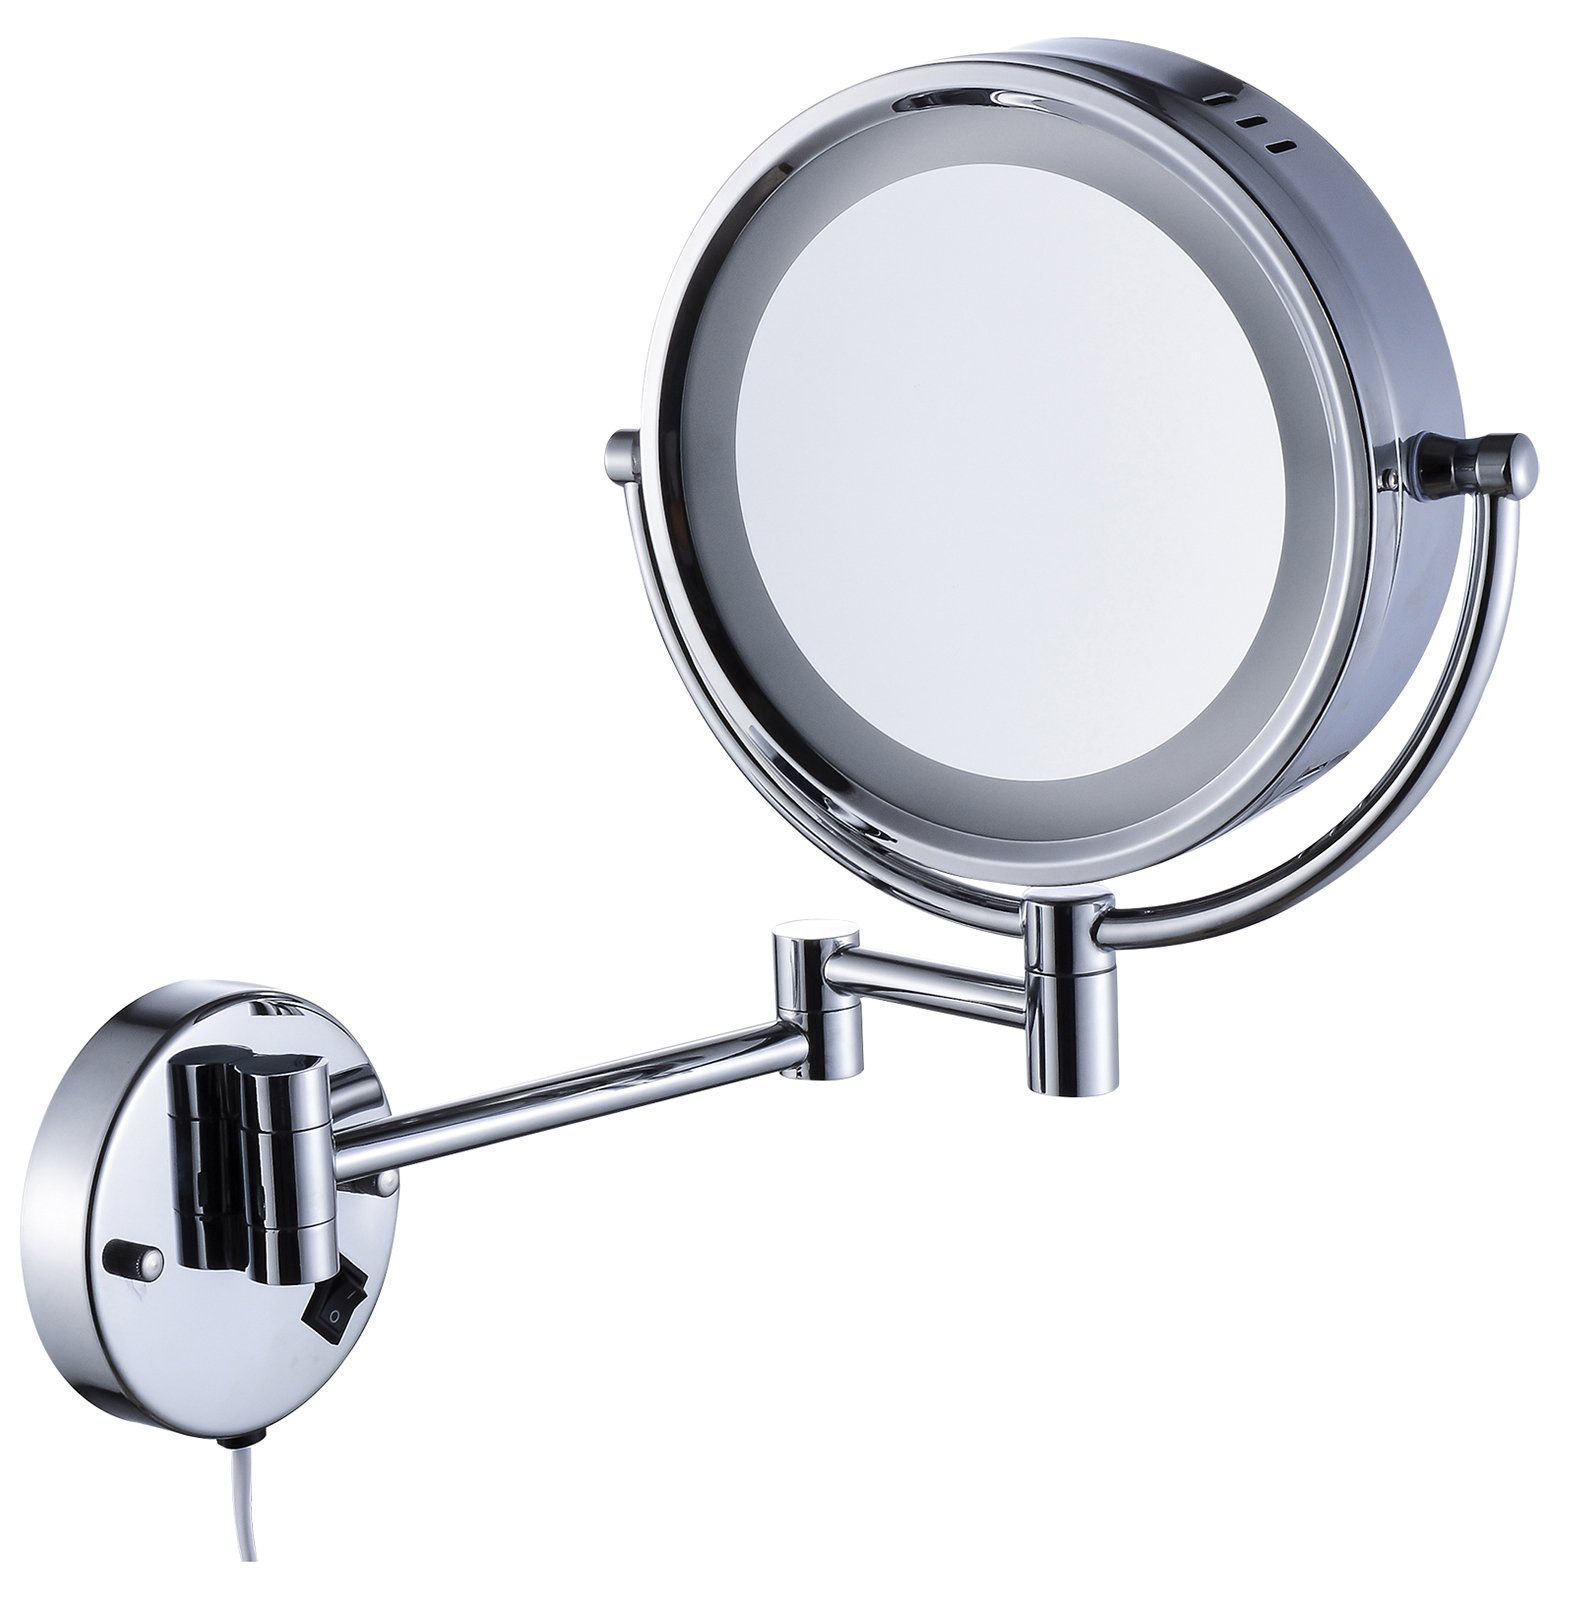 Cavoli Wall Mounted Makeup Mirror with LED Lighted 10x Magnification,8.5 Inches,Bathroom and Hotel, Chrome Finish,Made of Brass